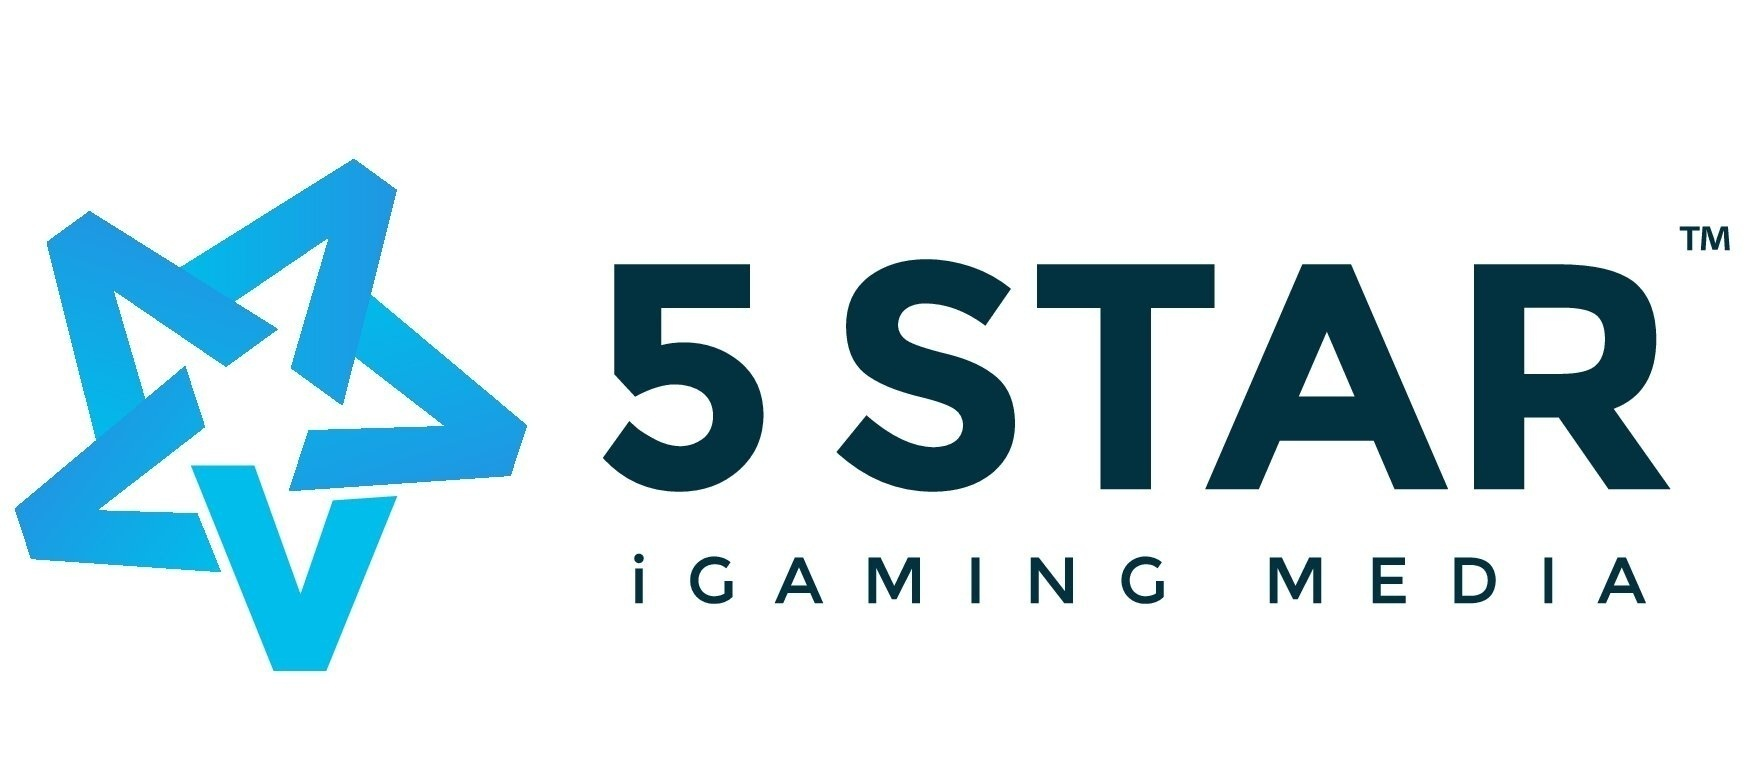 - 5 Star iGaming Media is a leading B2B media platform. Delivering daily coverage and industry-leading news, articles, interviews, and business analysis for the interactive gaming industry. www.5star.media